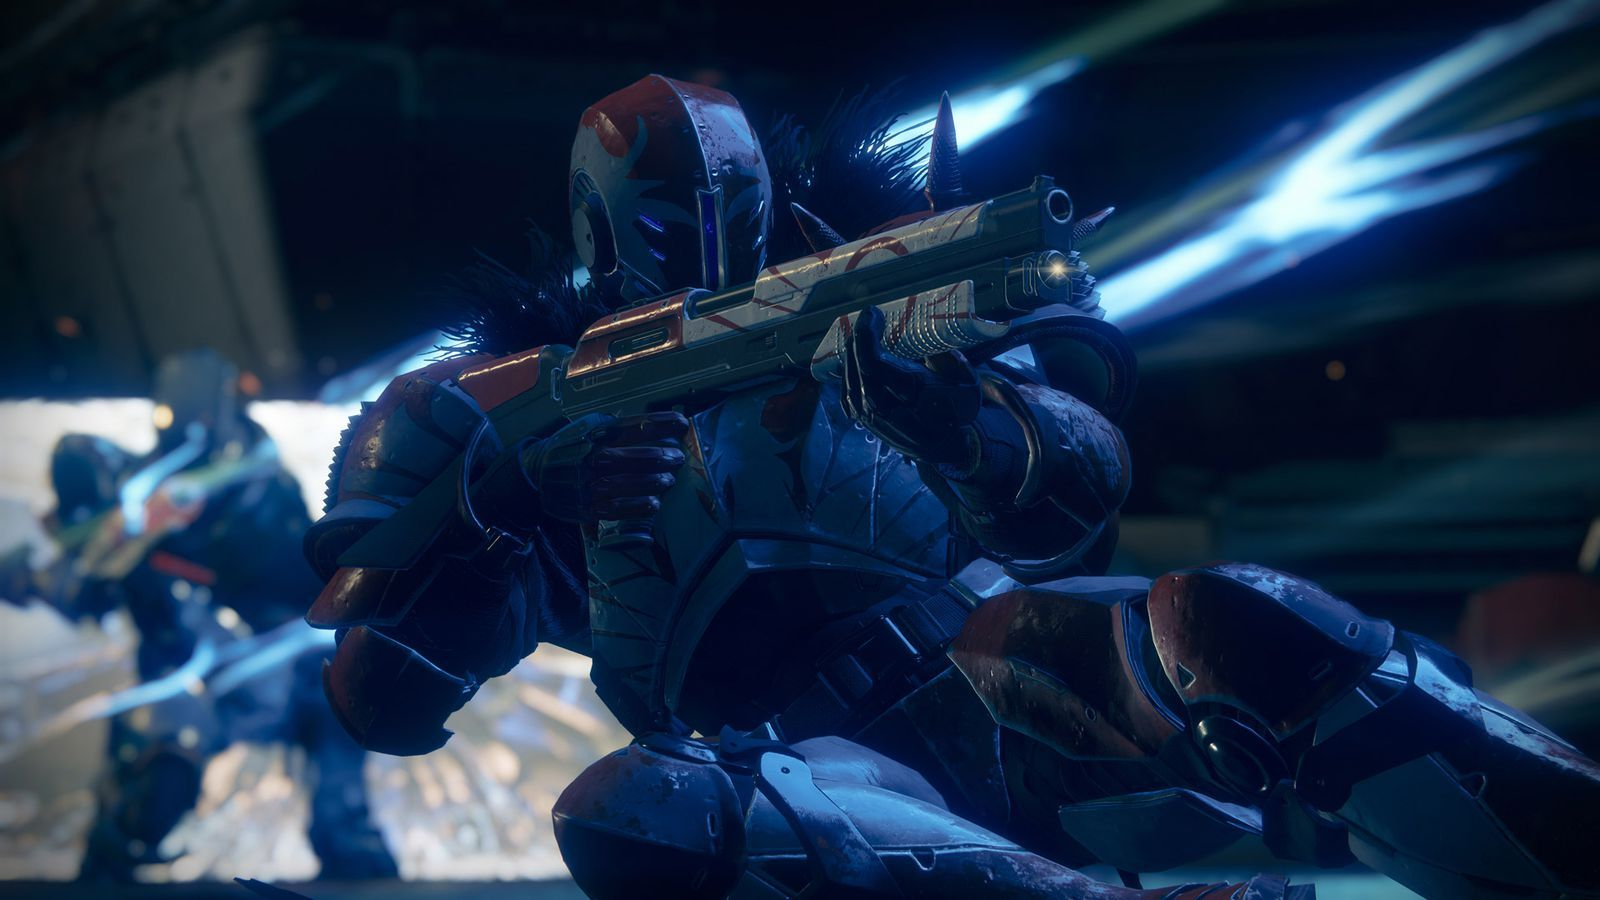 What's included in Destiny 2's beta - Polygon